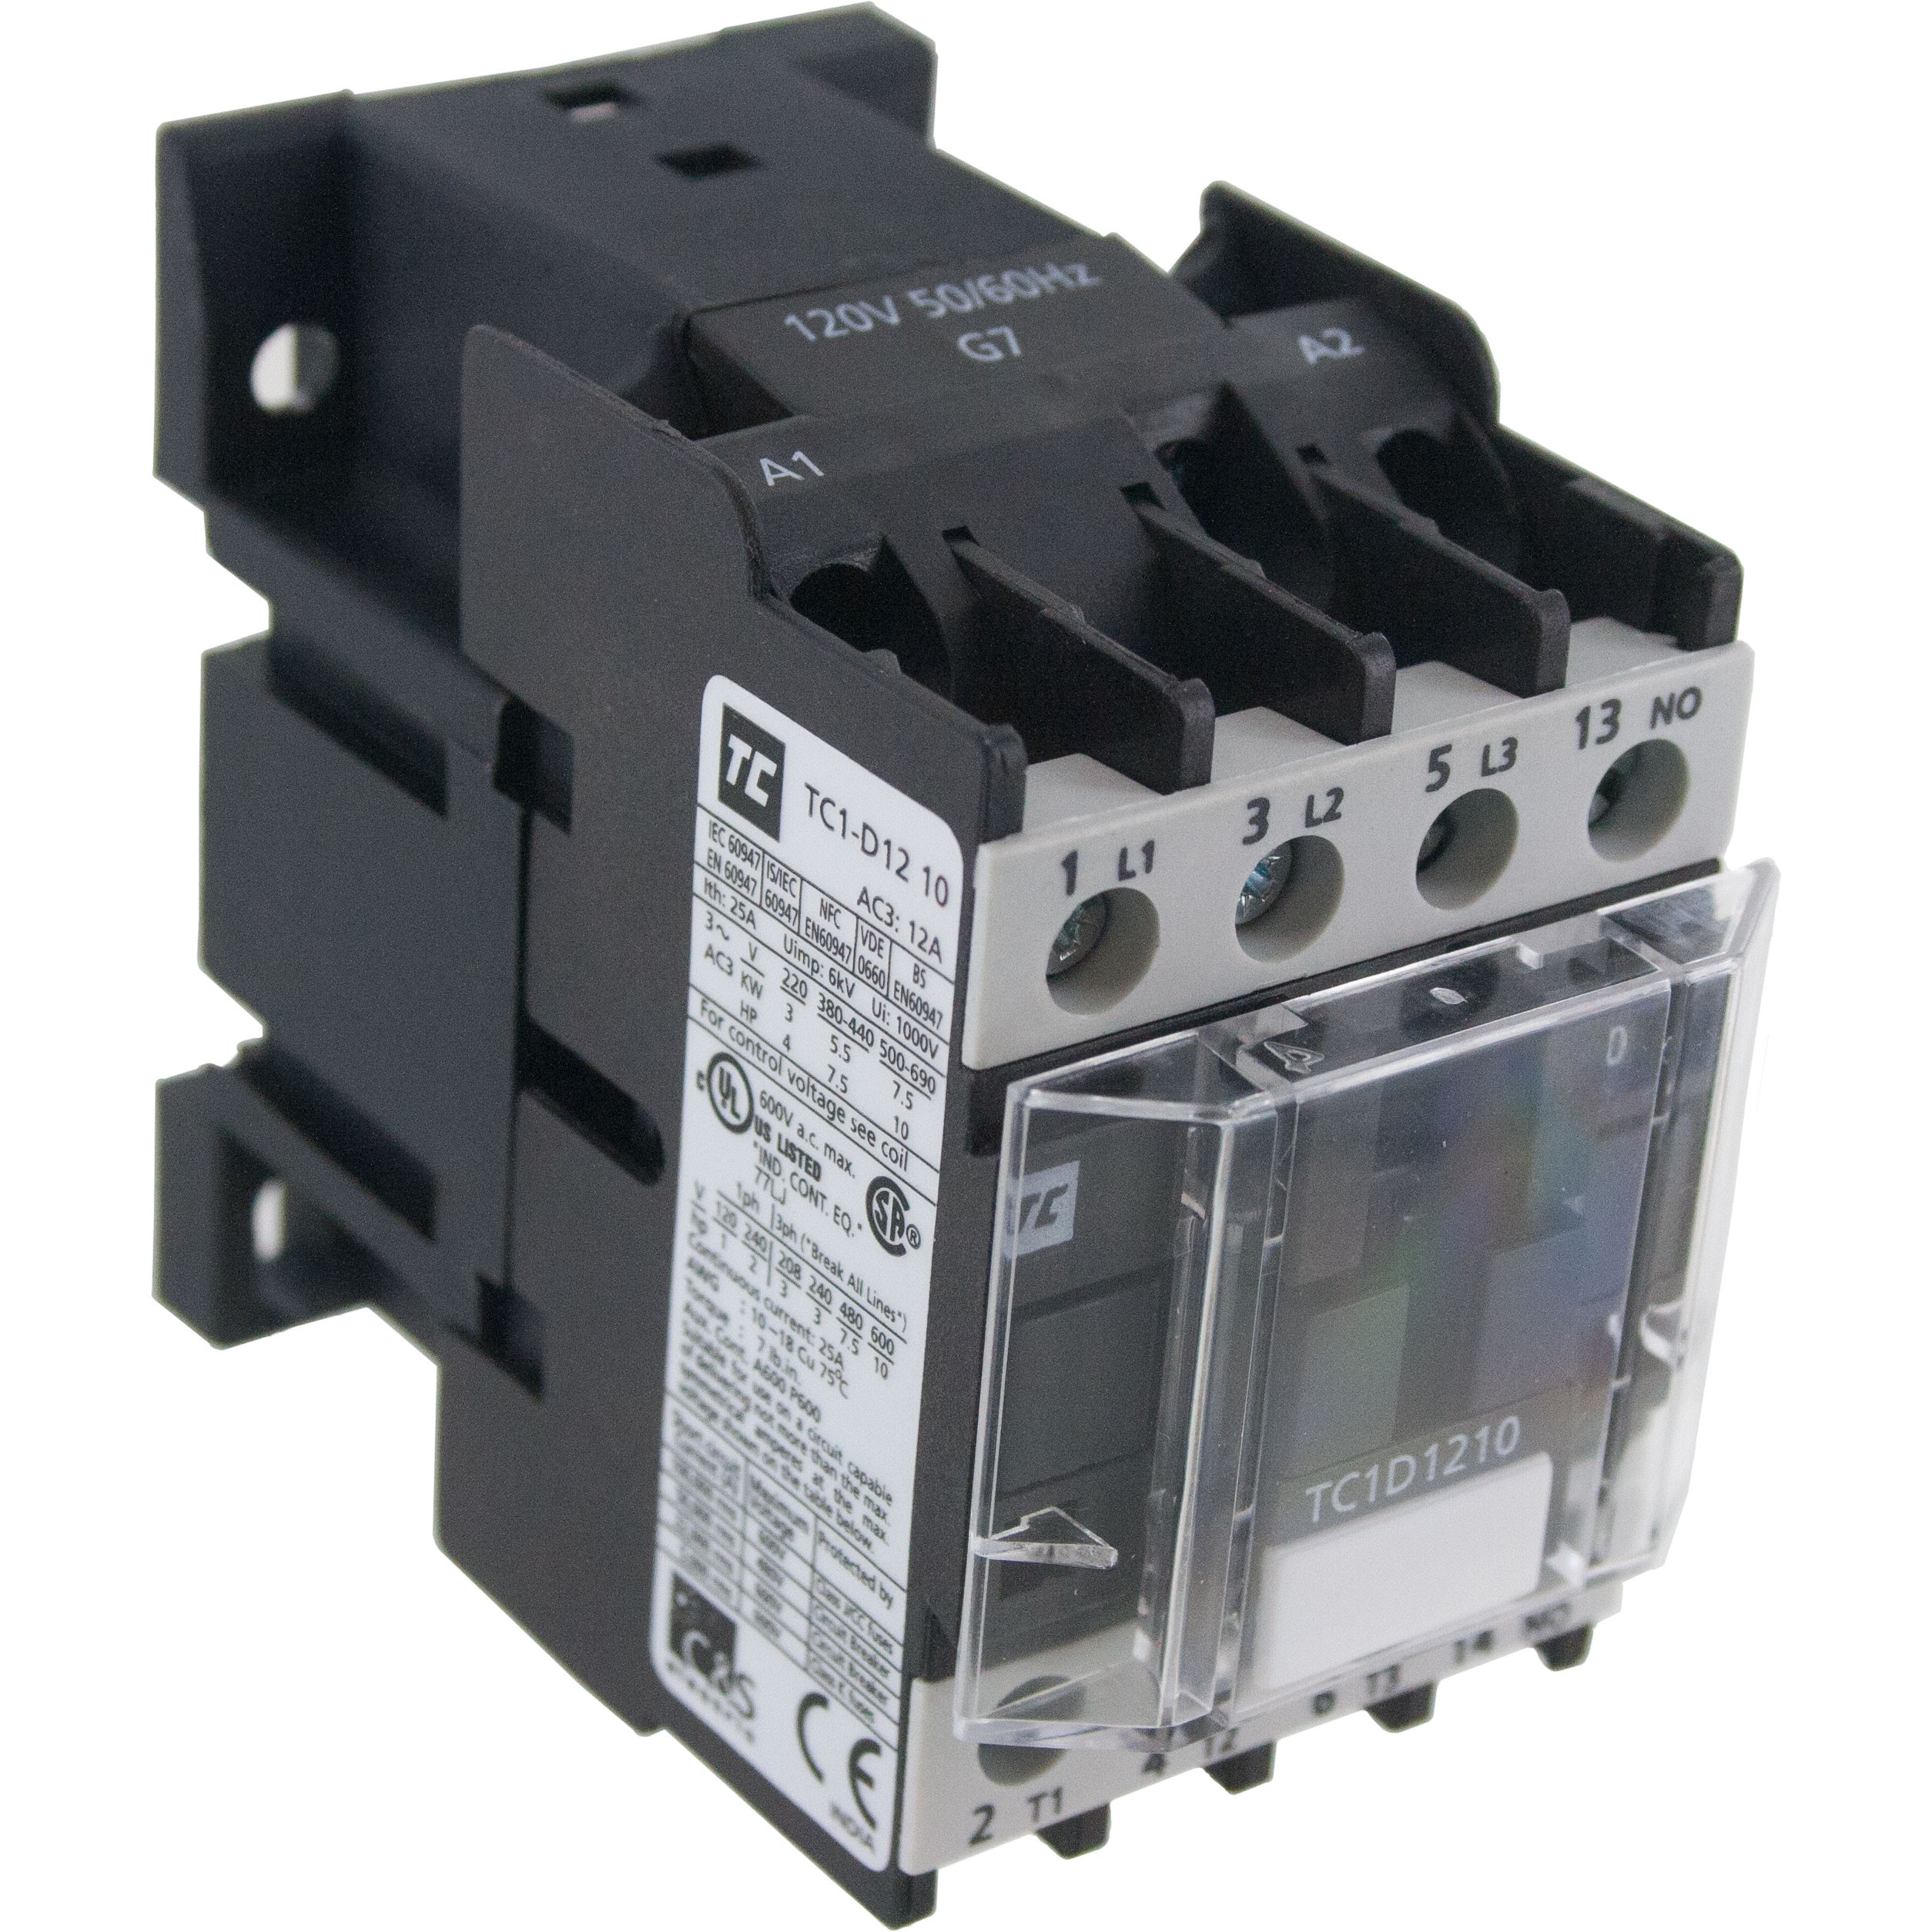 3 Pole Contactor 12 Amp 600 Vac Coil Angle